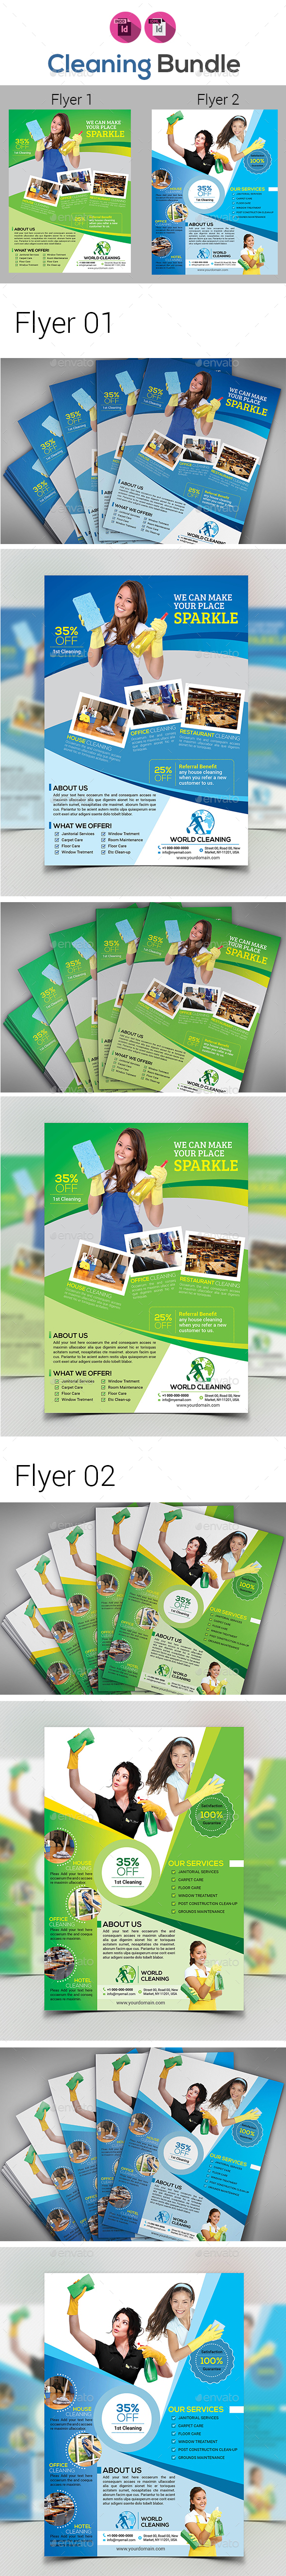 Cleaning Service Flyer Bundle V2 - Corporate Flyers